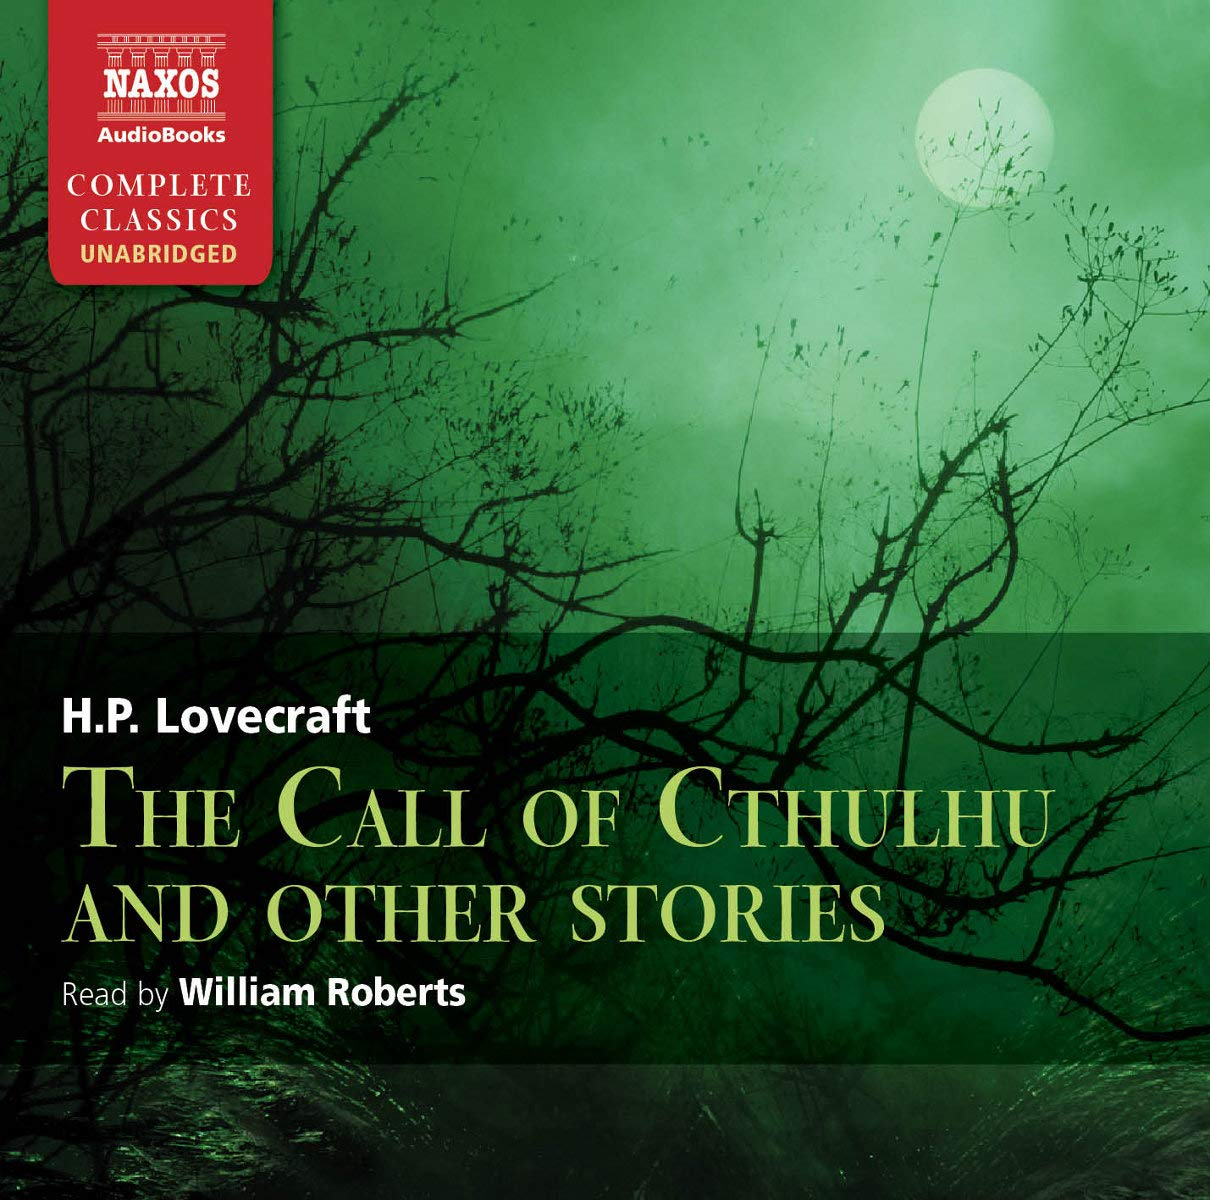 Call of Cthulhu and other stories, The (Naxos Complete